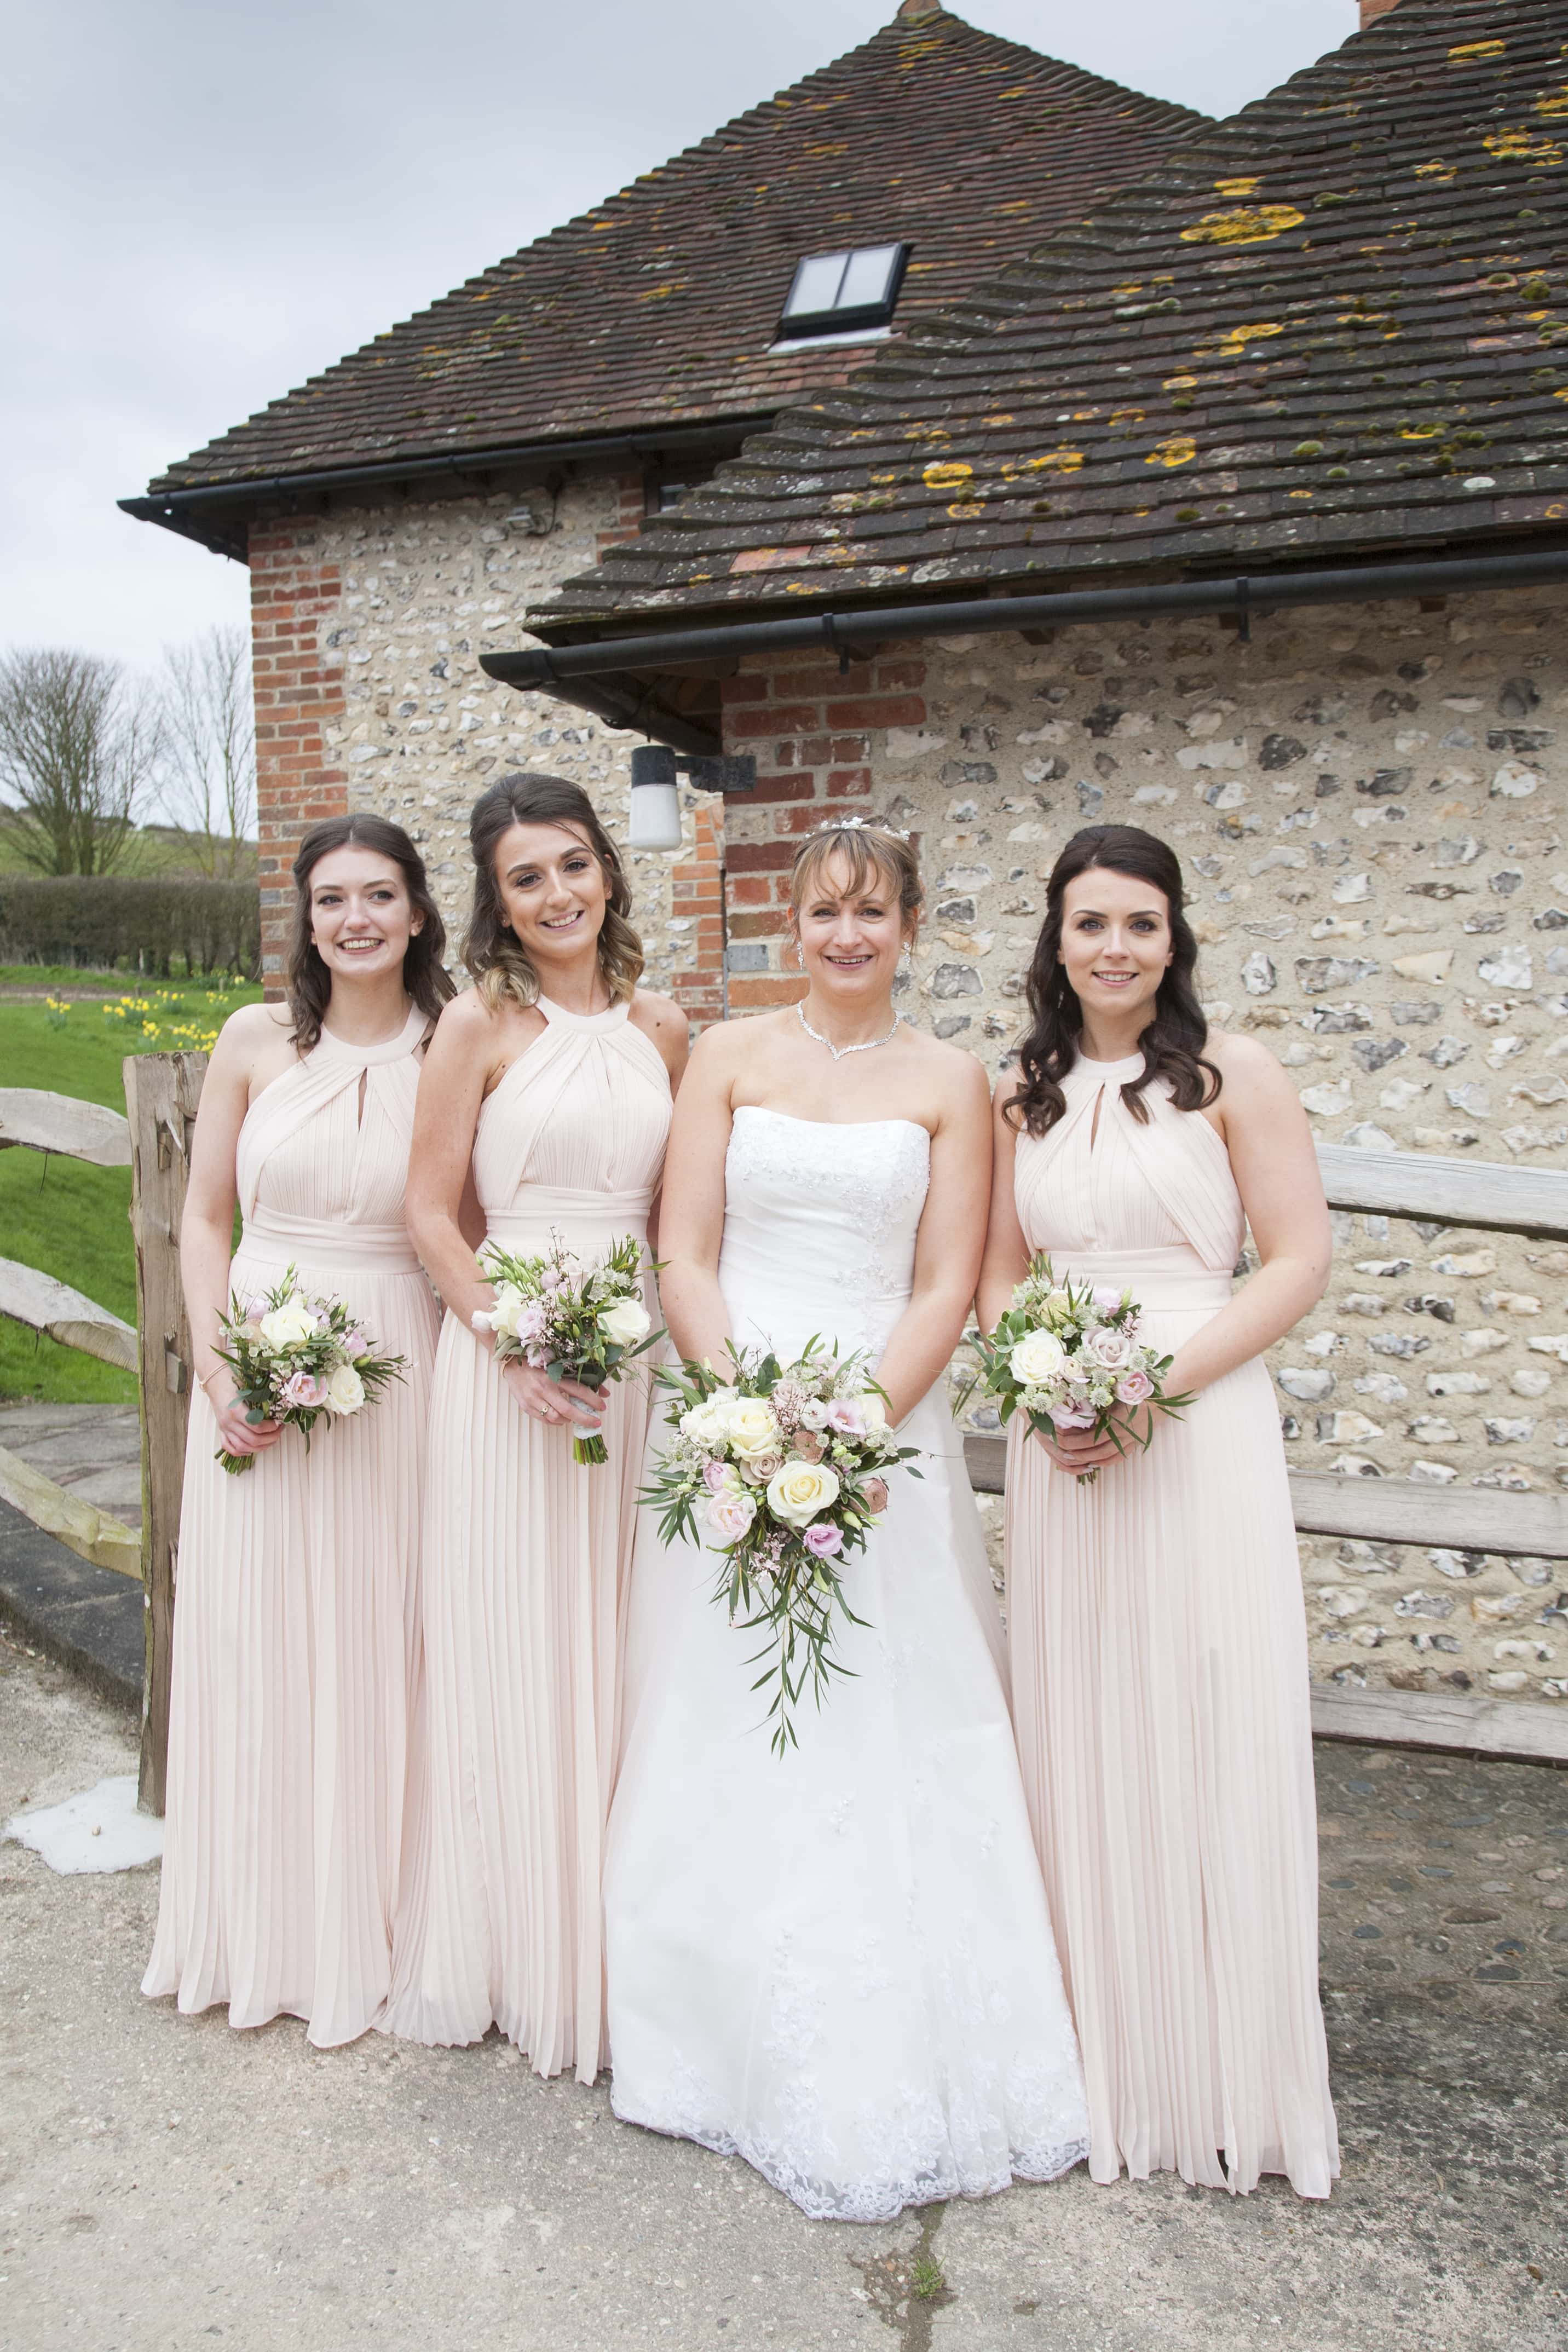 Pangdean barn April wedding. Bride and bridesmaids in nude blush pink dresses with pink and white flowers